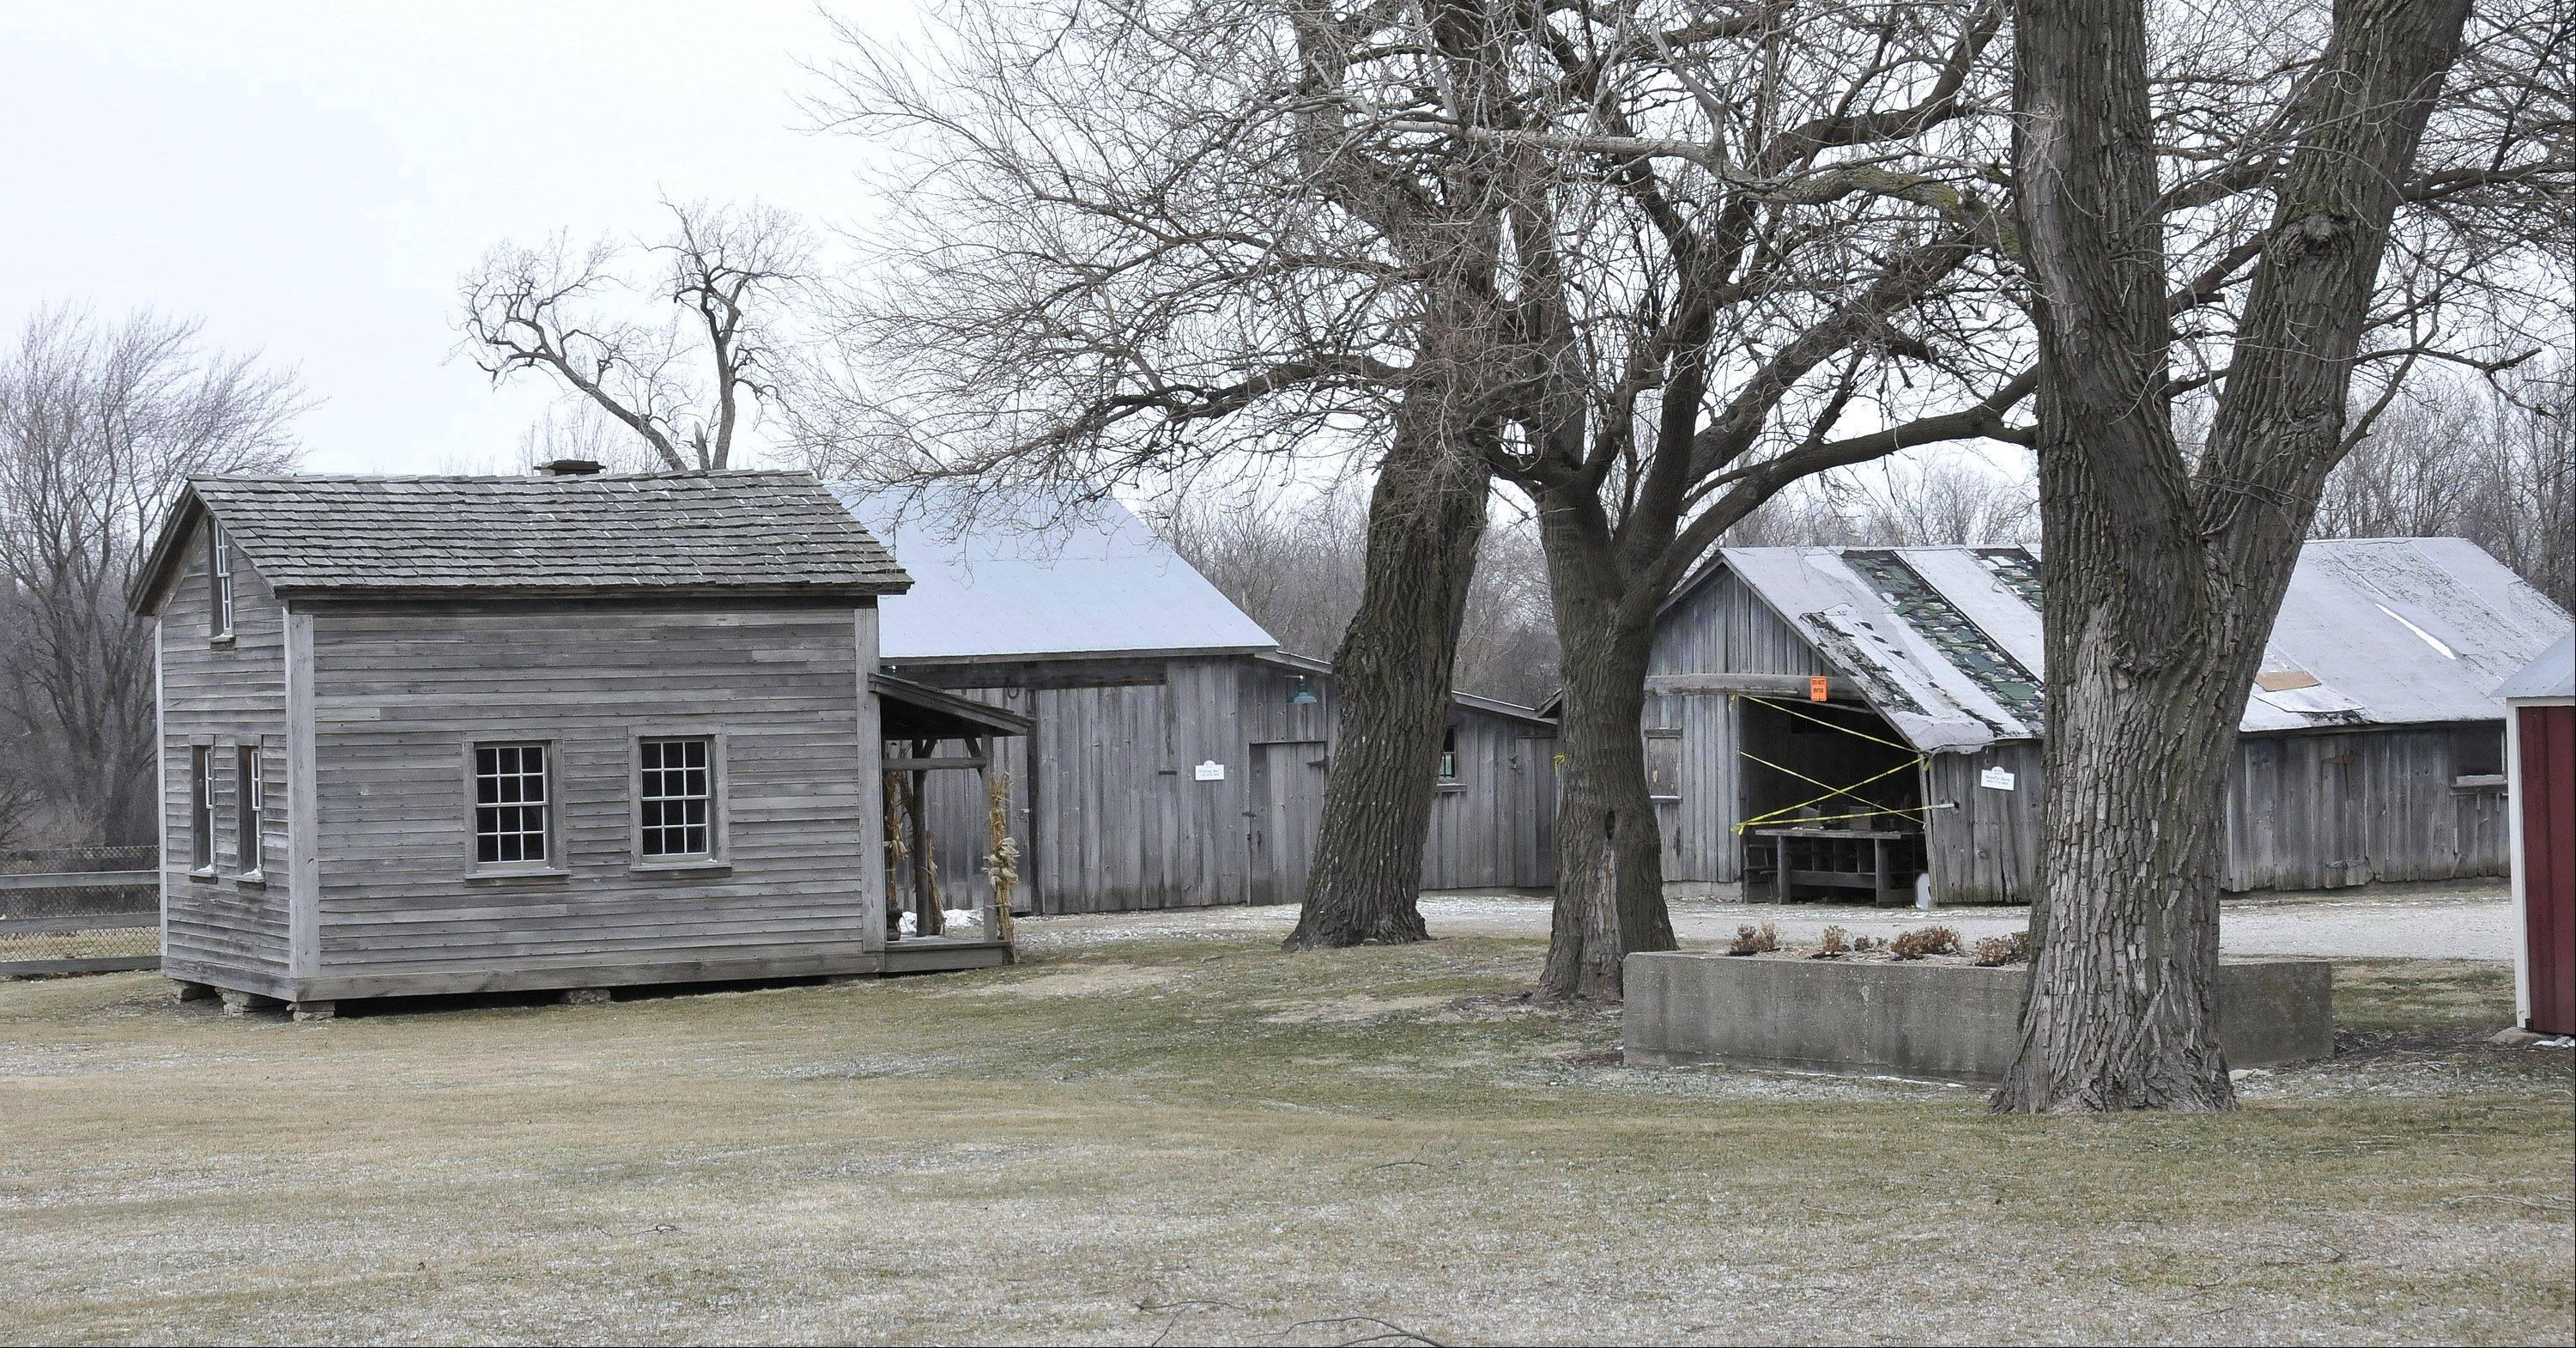 Fischer Farm: Established around 1838, the 5-acre Fischer Farm is believed to be one of the oldest remaining homesteads in the county.